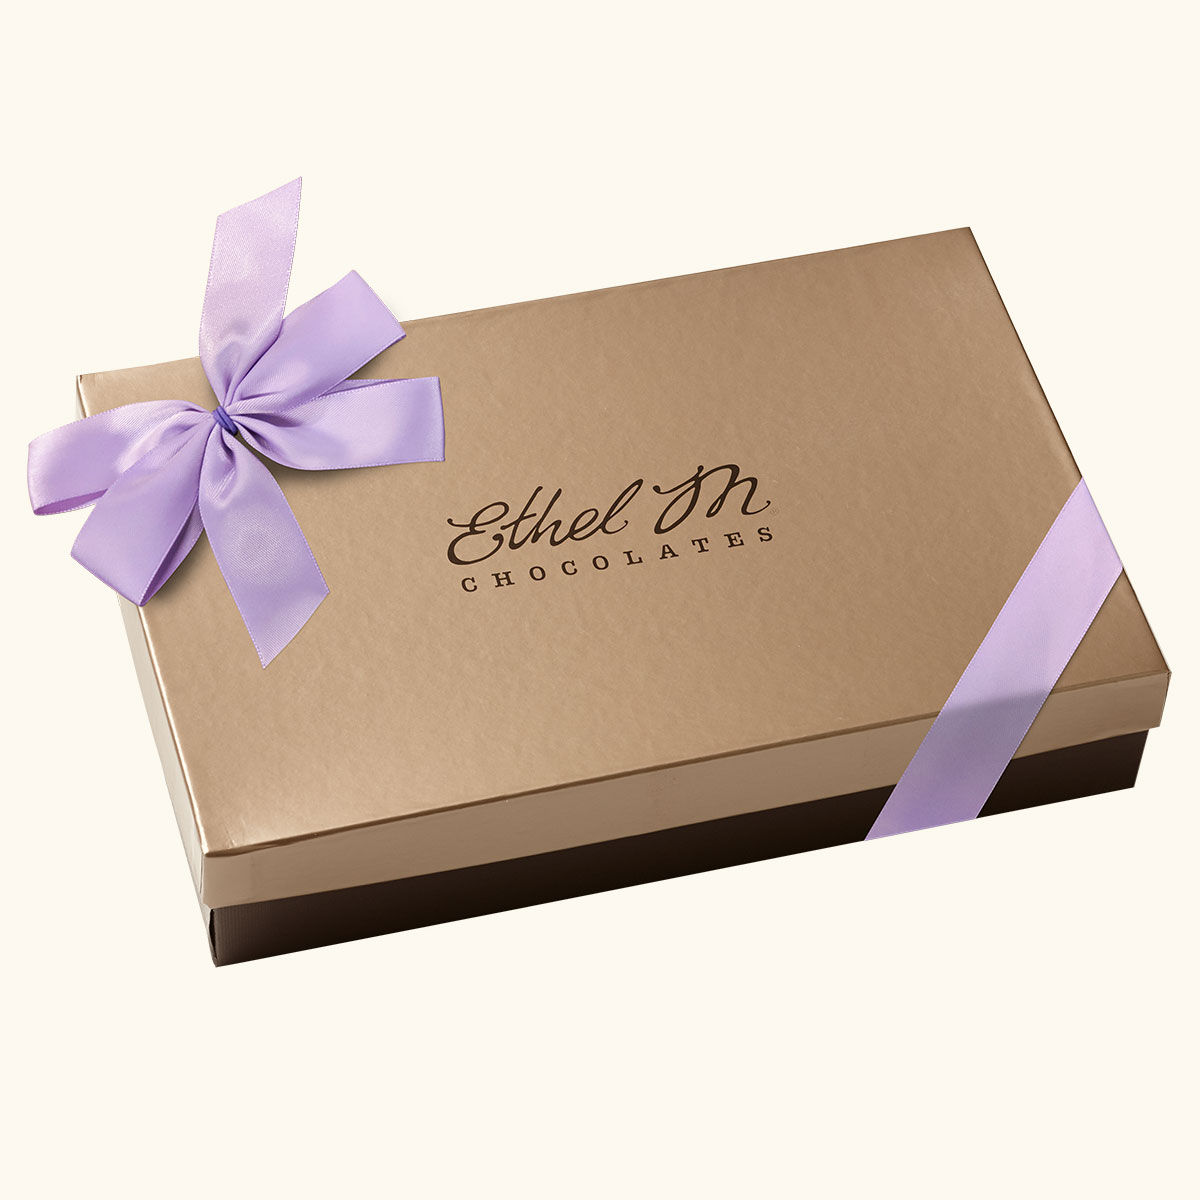 Design Your Own ORCHID RIBBON Chocolate Assortment, Two-Layer Collection, 40-80 Total Pieces